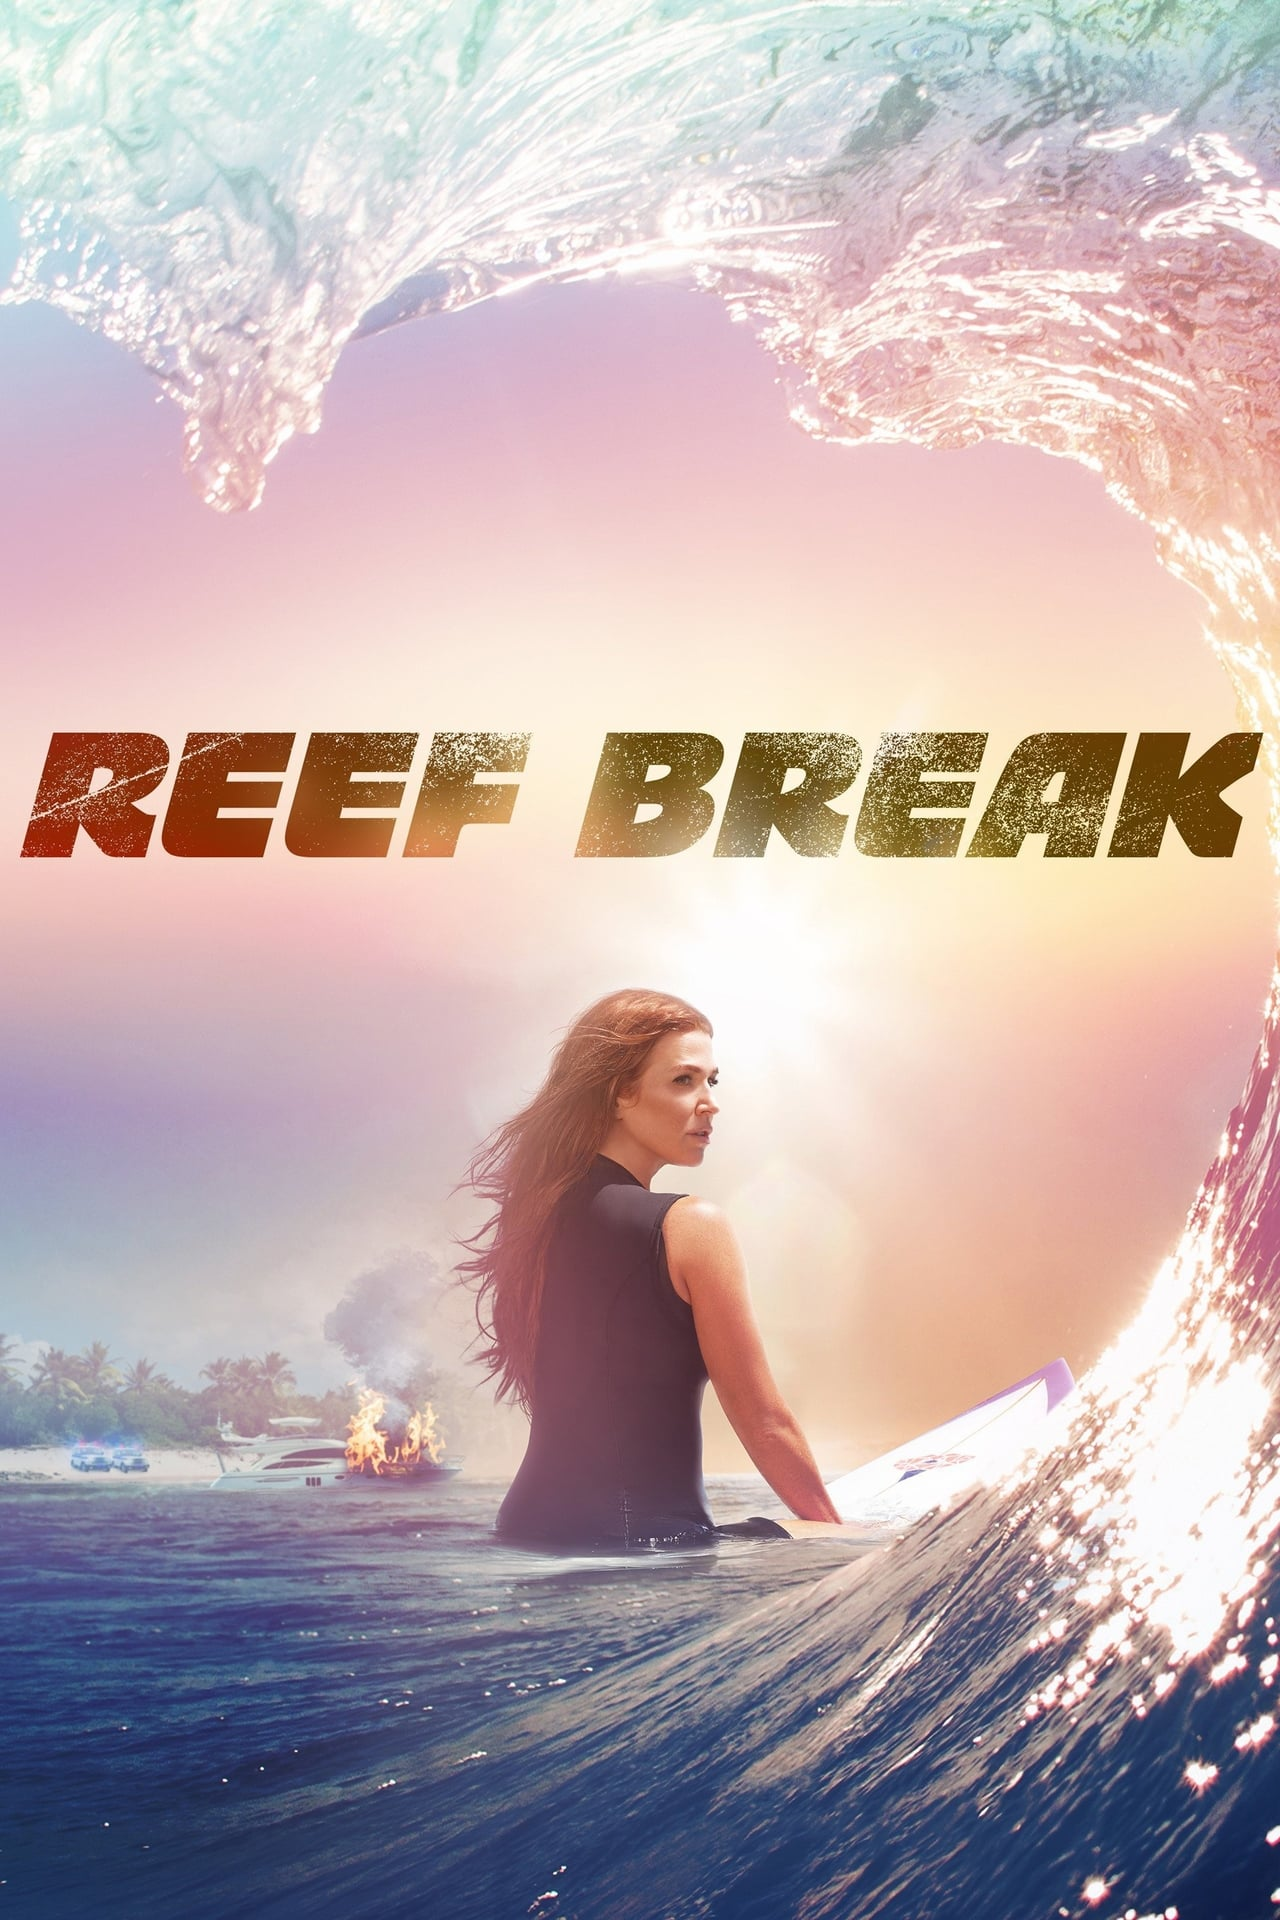 Reef Break Season 1 gomovies